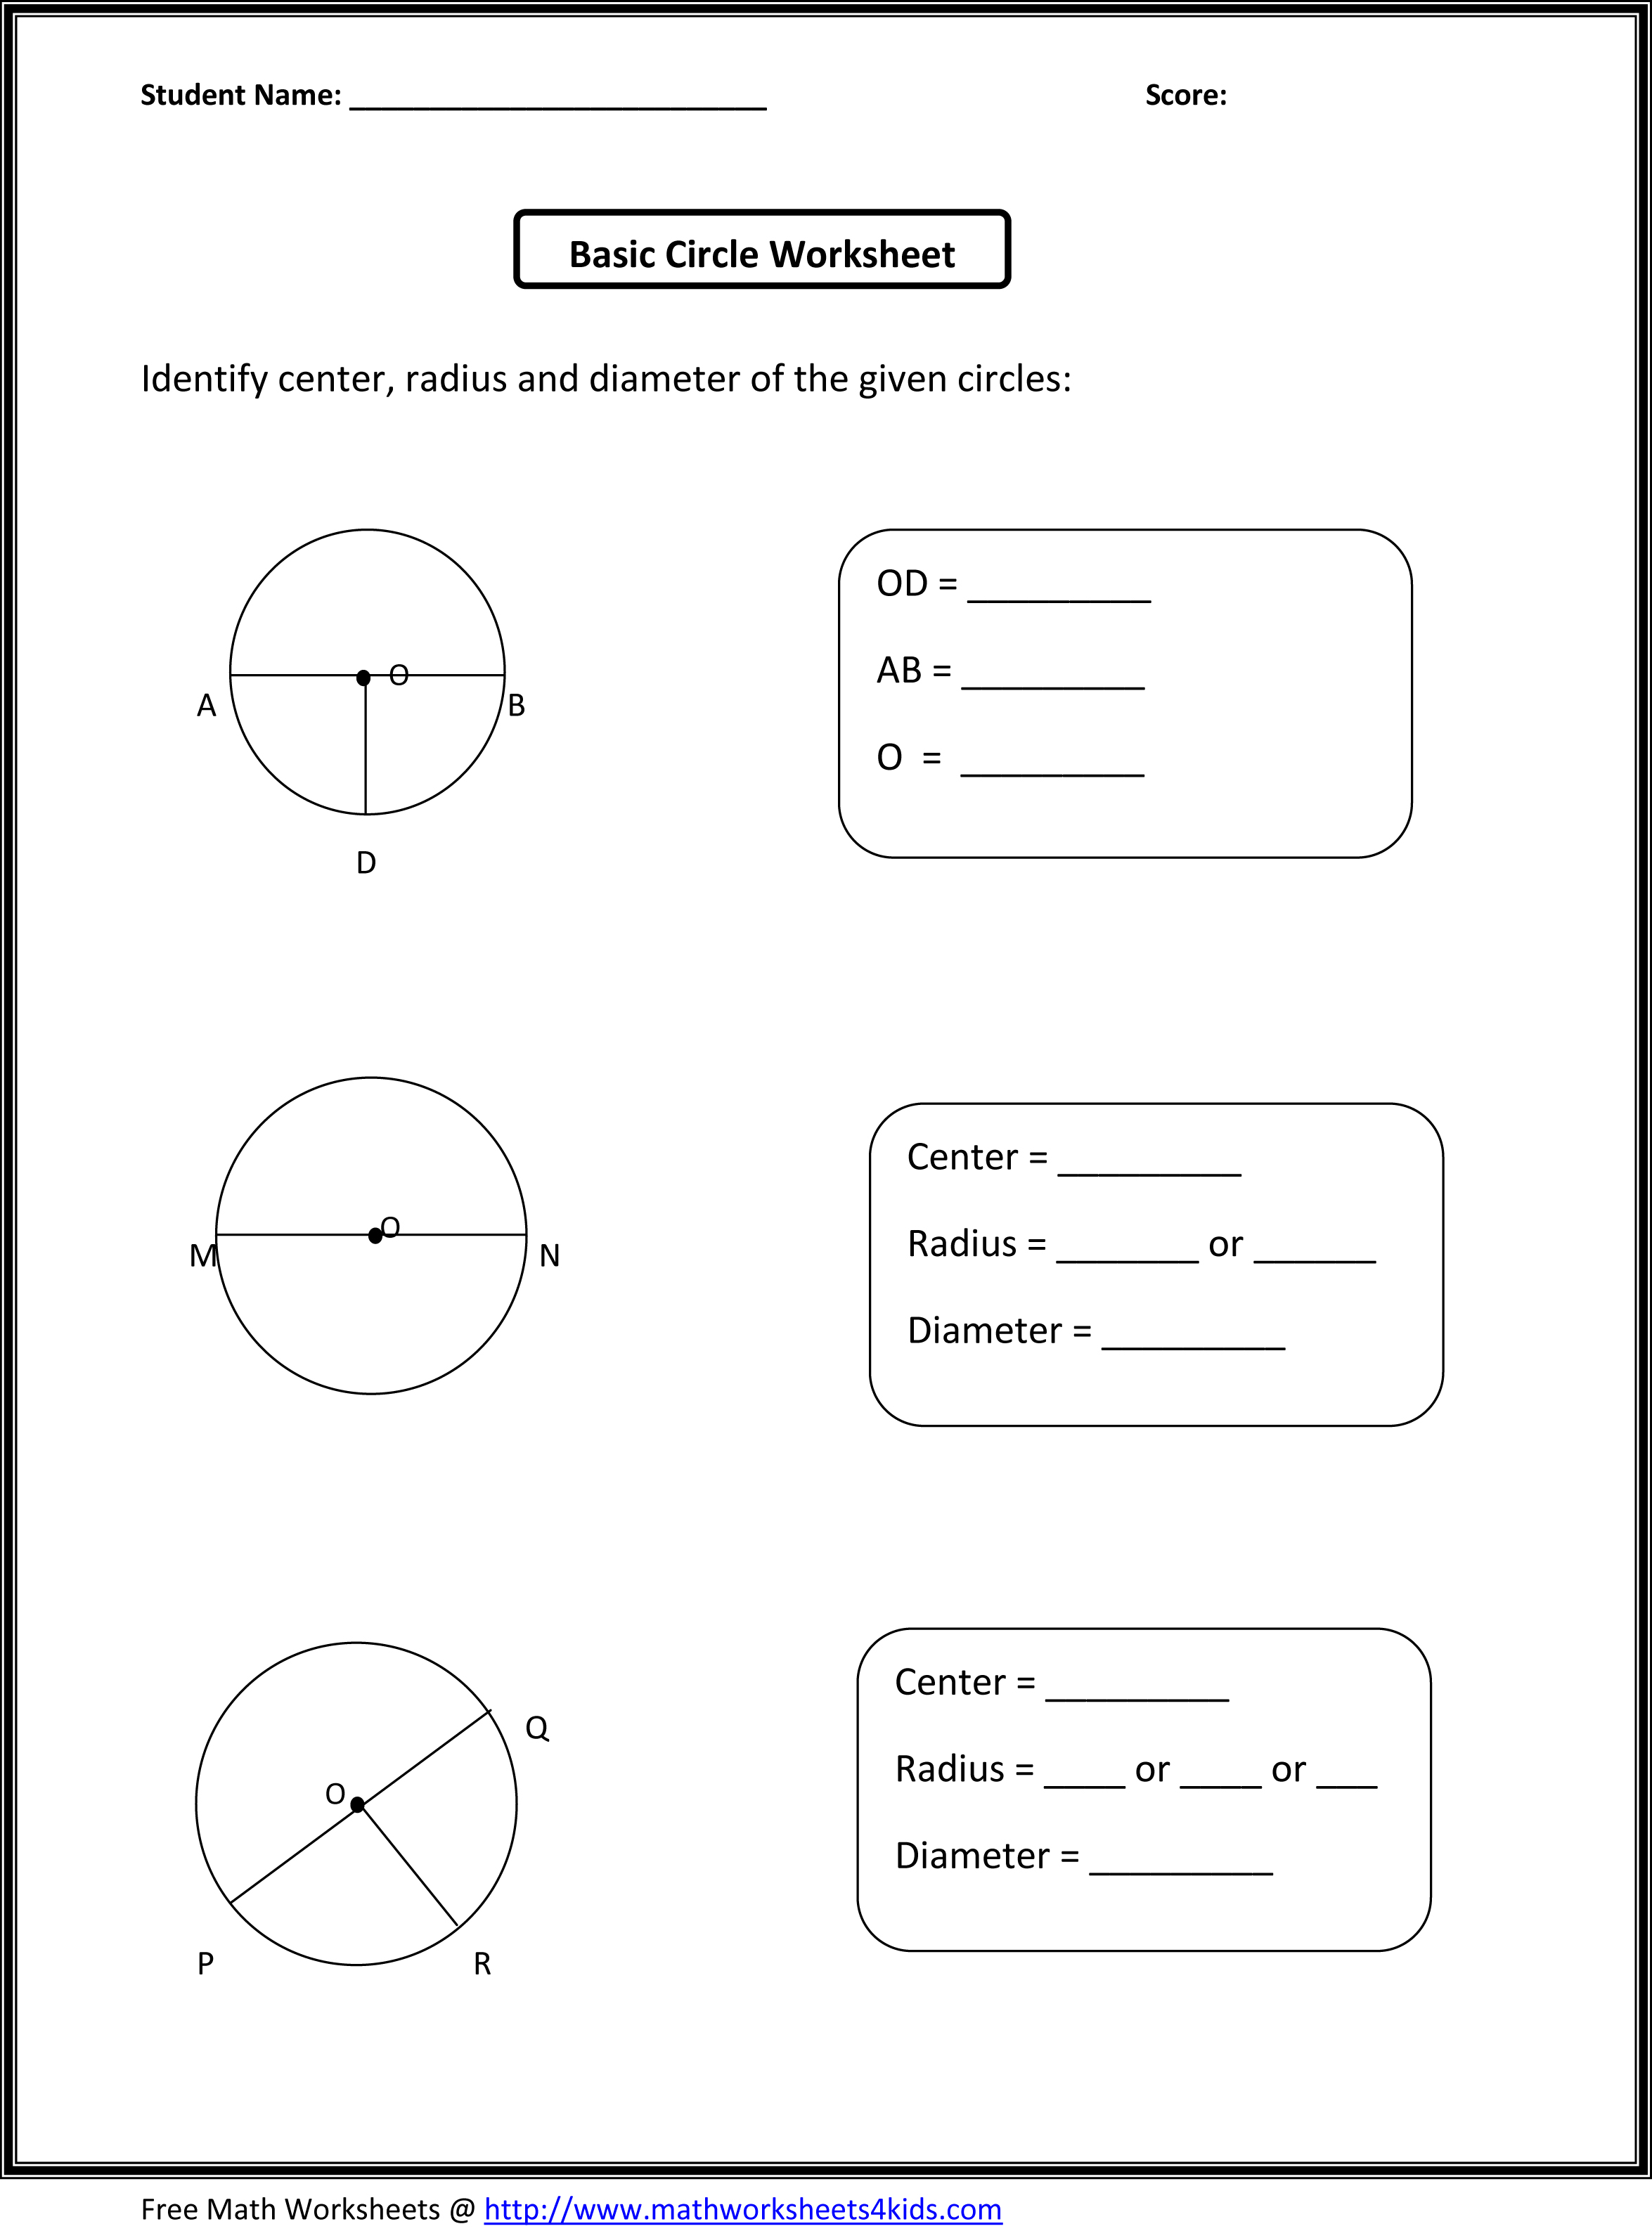 Printables Math Problems For 3rd Graders Printable Worksheets math problems for 3rd grade scalien graders worksheets abitlikethis